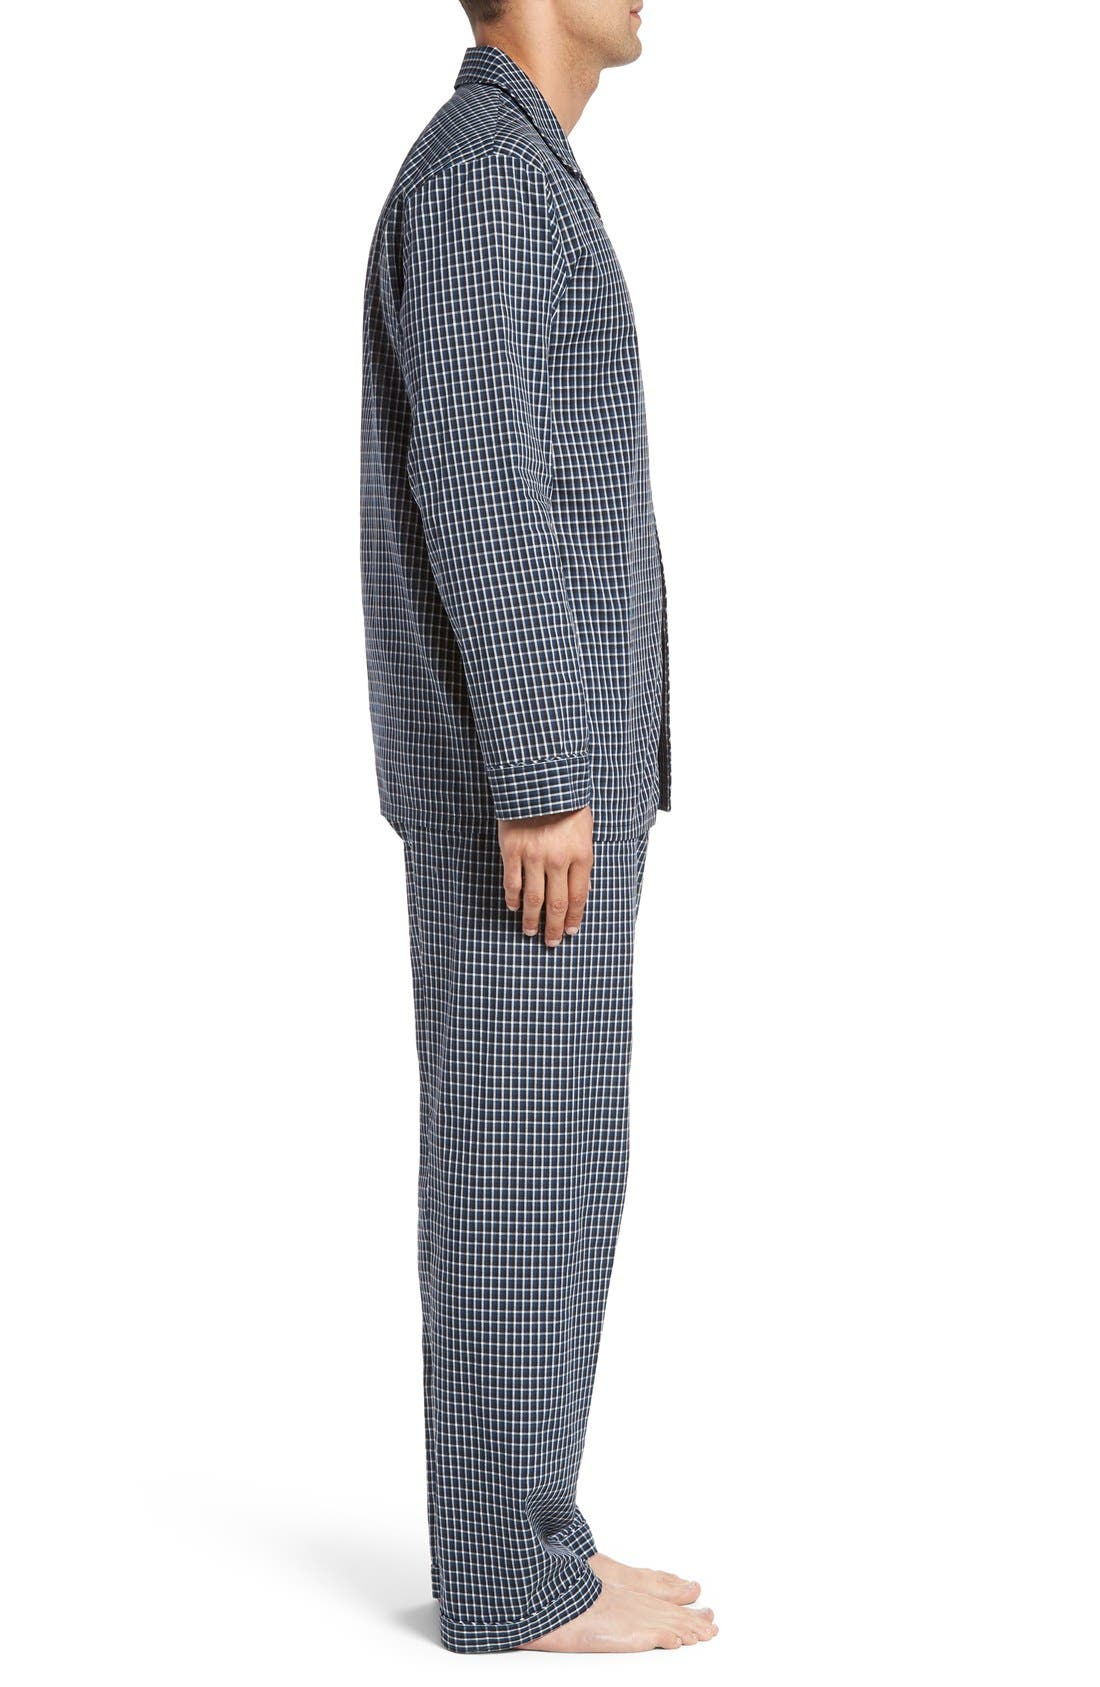 'CVC' Cotton Blend Pajamas,                             Alternate thumbnail 3, color,                             001